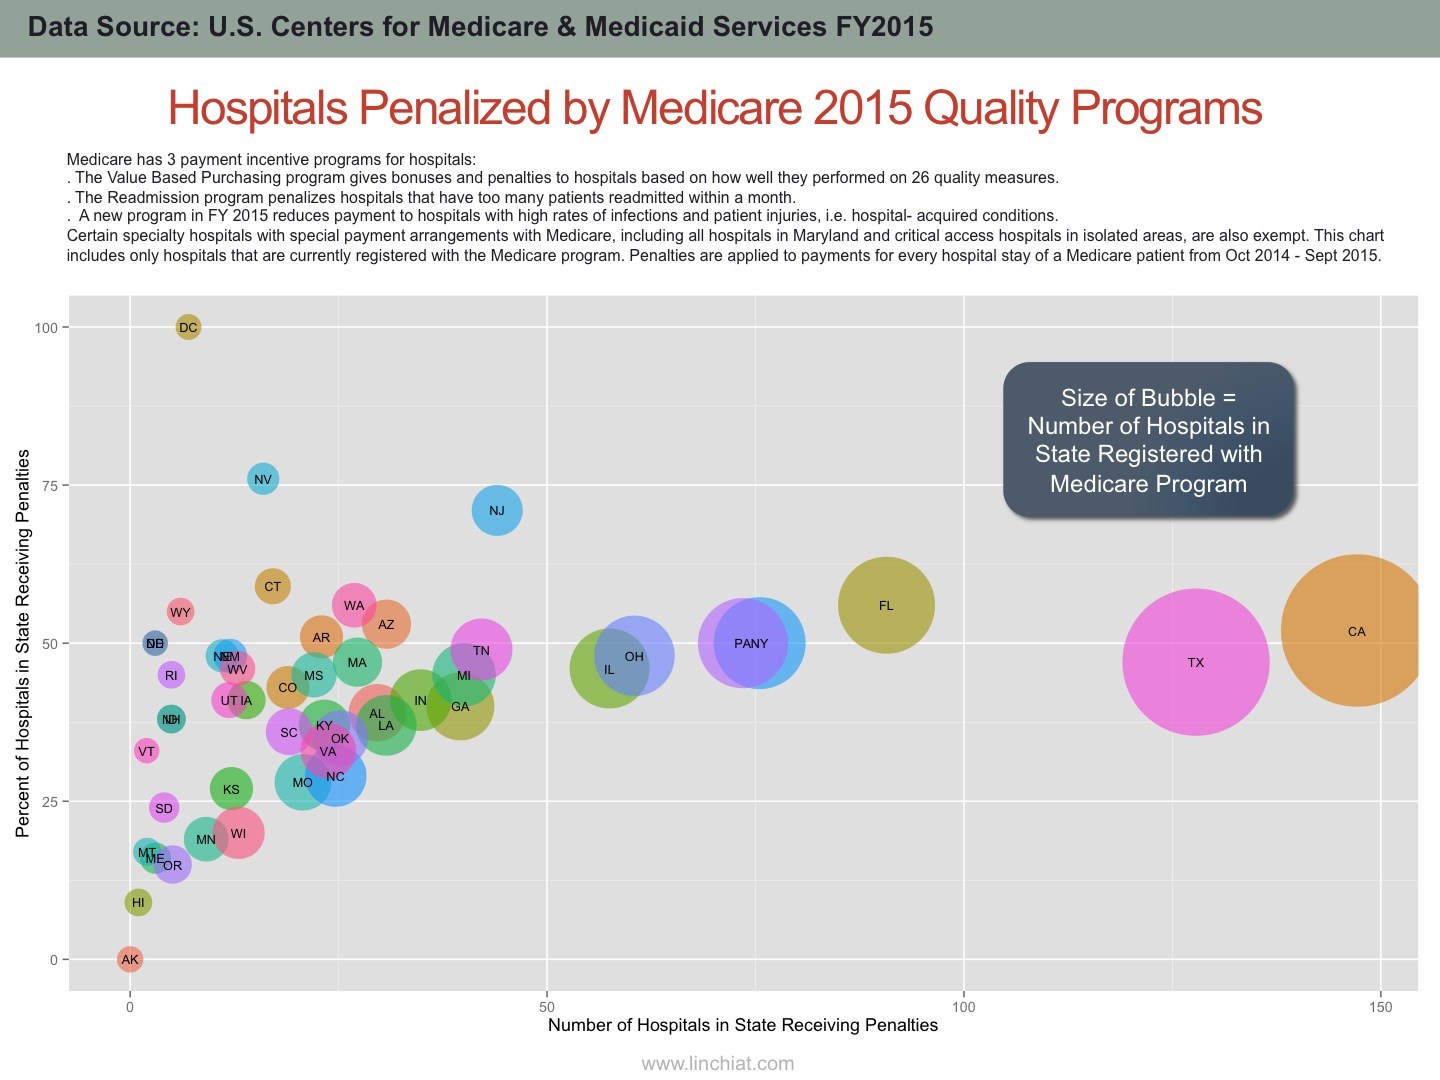 Comparing Percent vs. Number of Hospitals Receiving 2015 Medicare Penalties by State